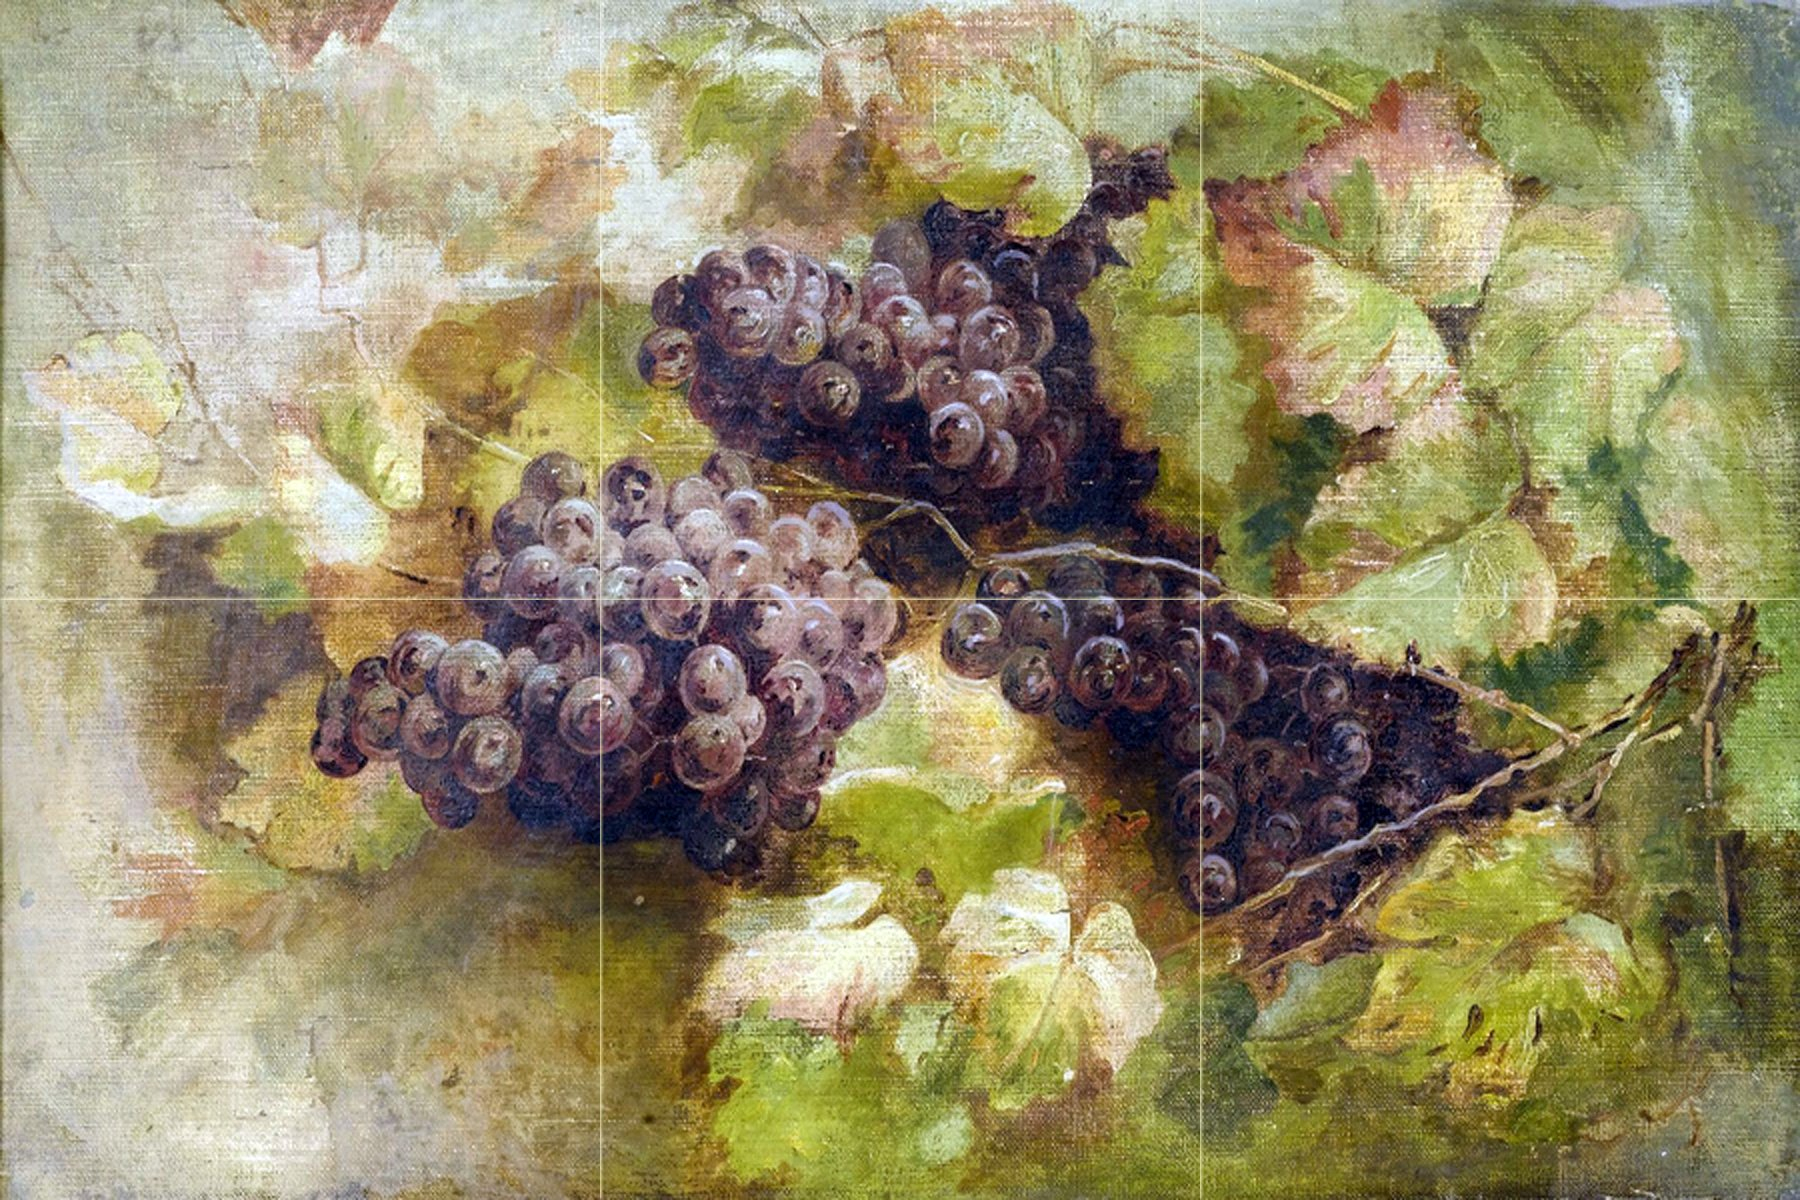 Vine fruits pattern grapes by Giovanni Segantini Tile Mural Kitchen Bathroom Wall Backsplash Behind Stove Range Sink Splashback 3x2 8'' Ceramic, Matte by FlekmanArt